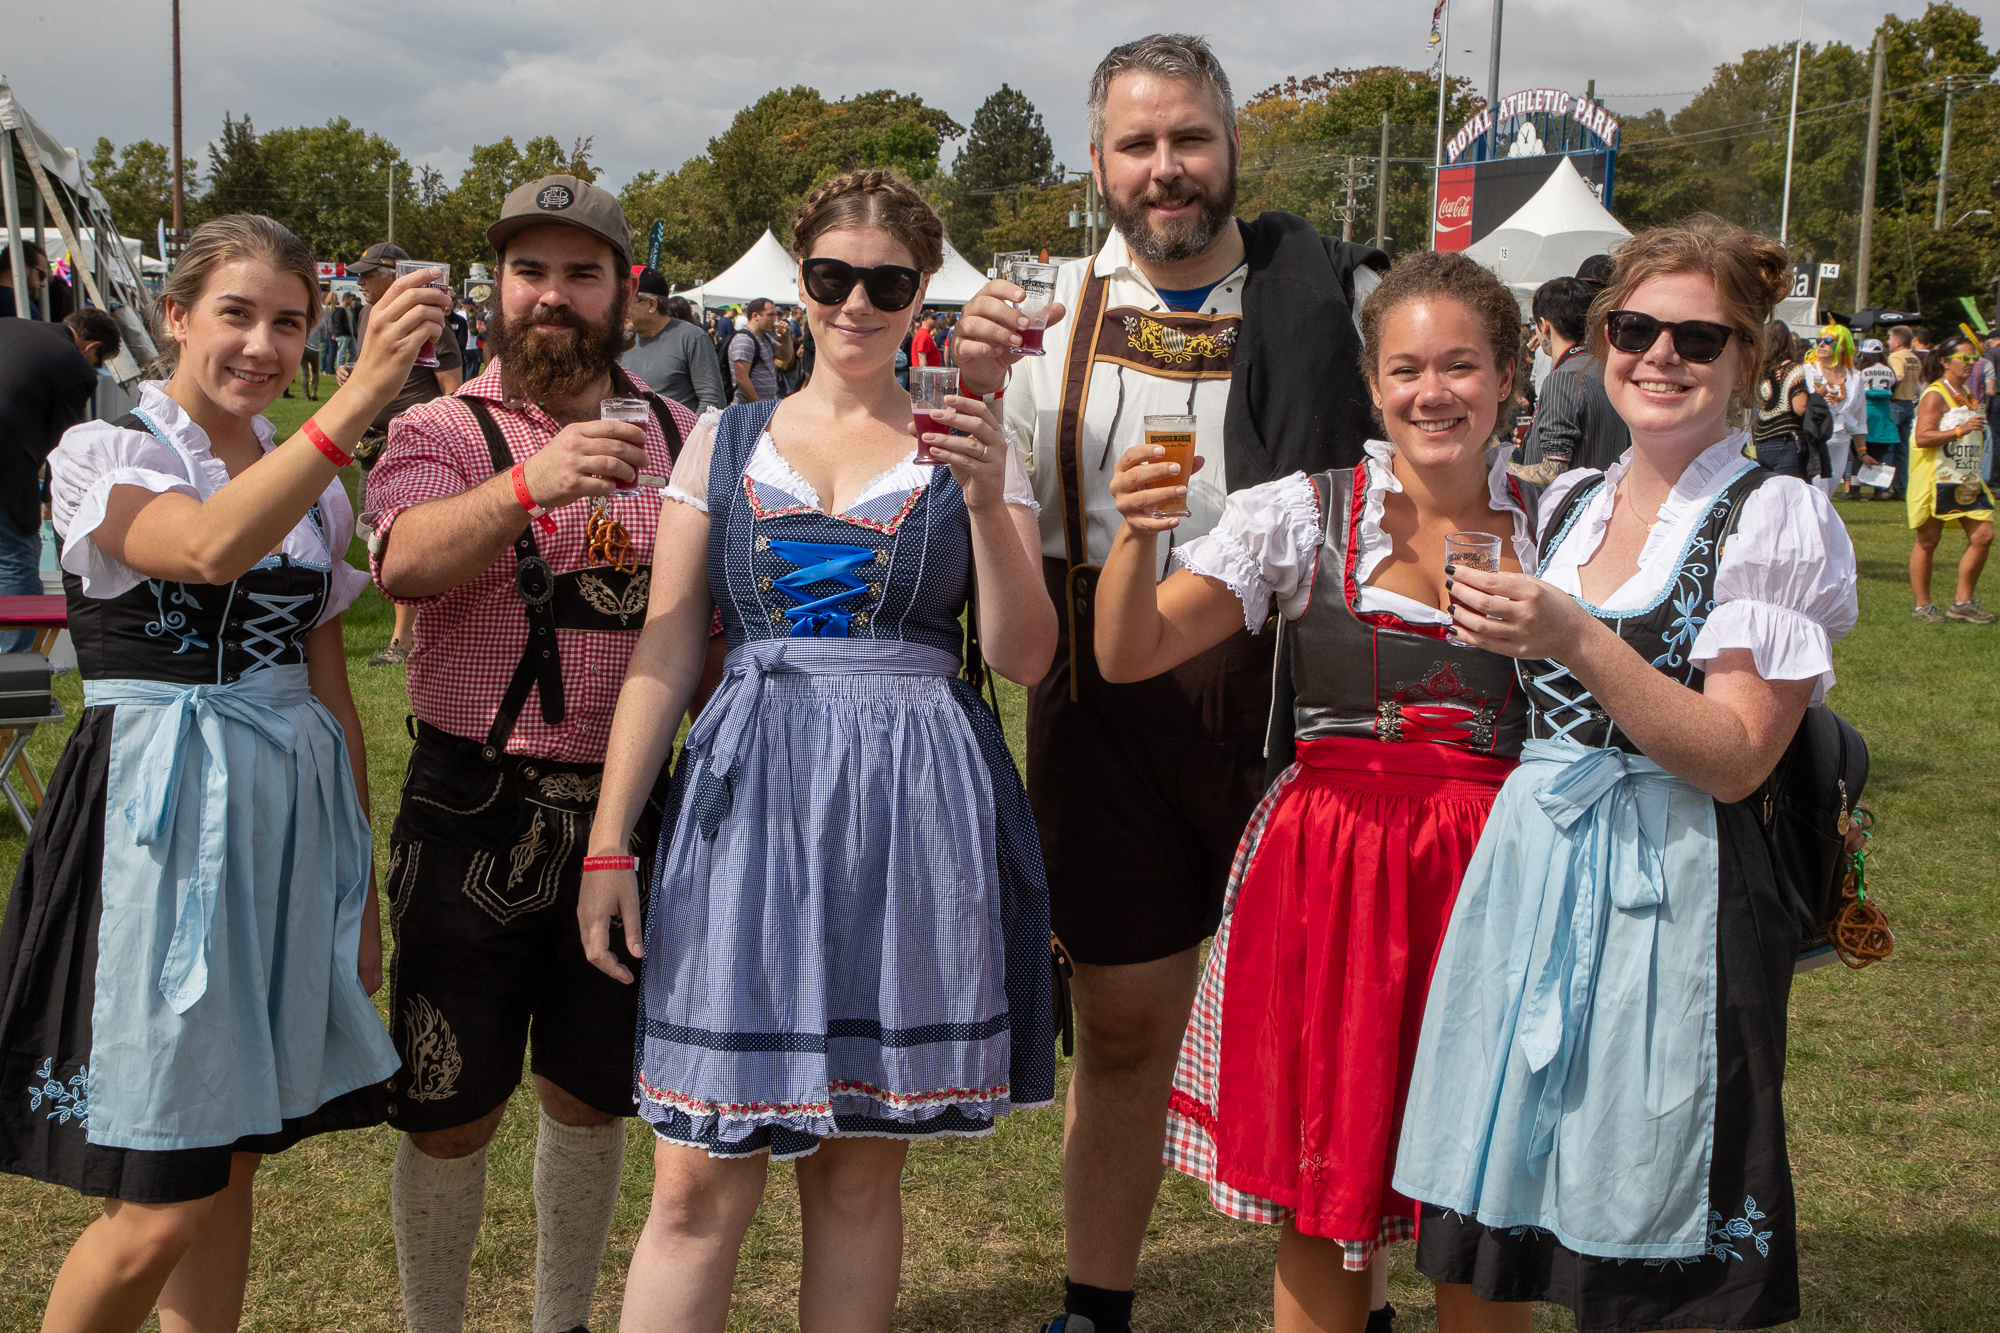 New Stewards Of Canada's Oldest Beer Fest Making Their Mark